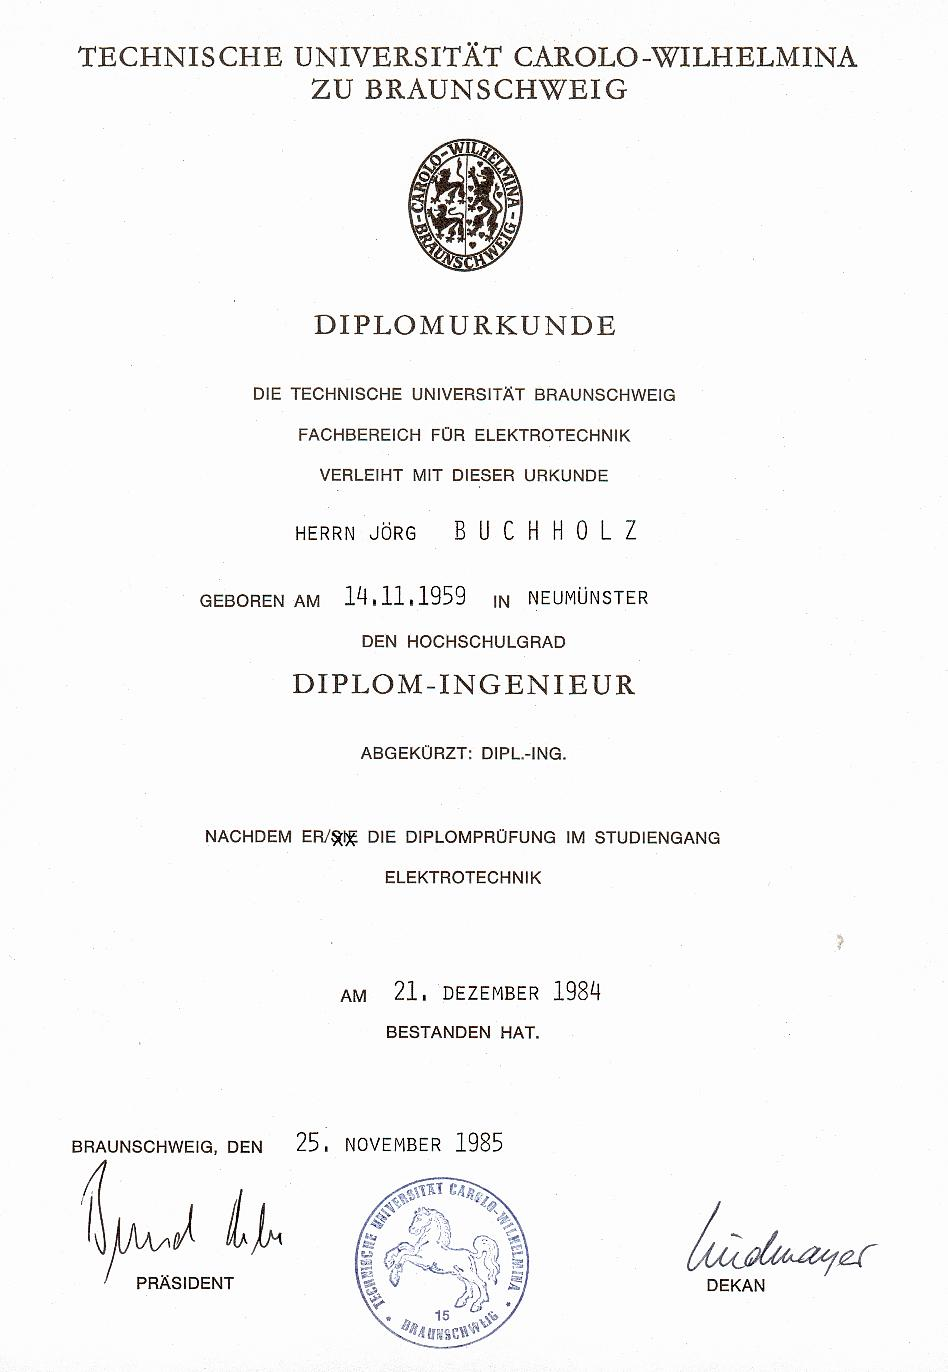 Ingo bojak phd thesis